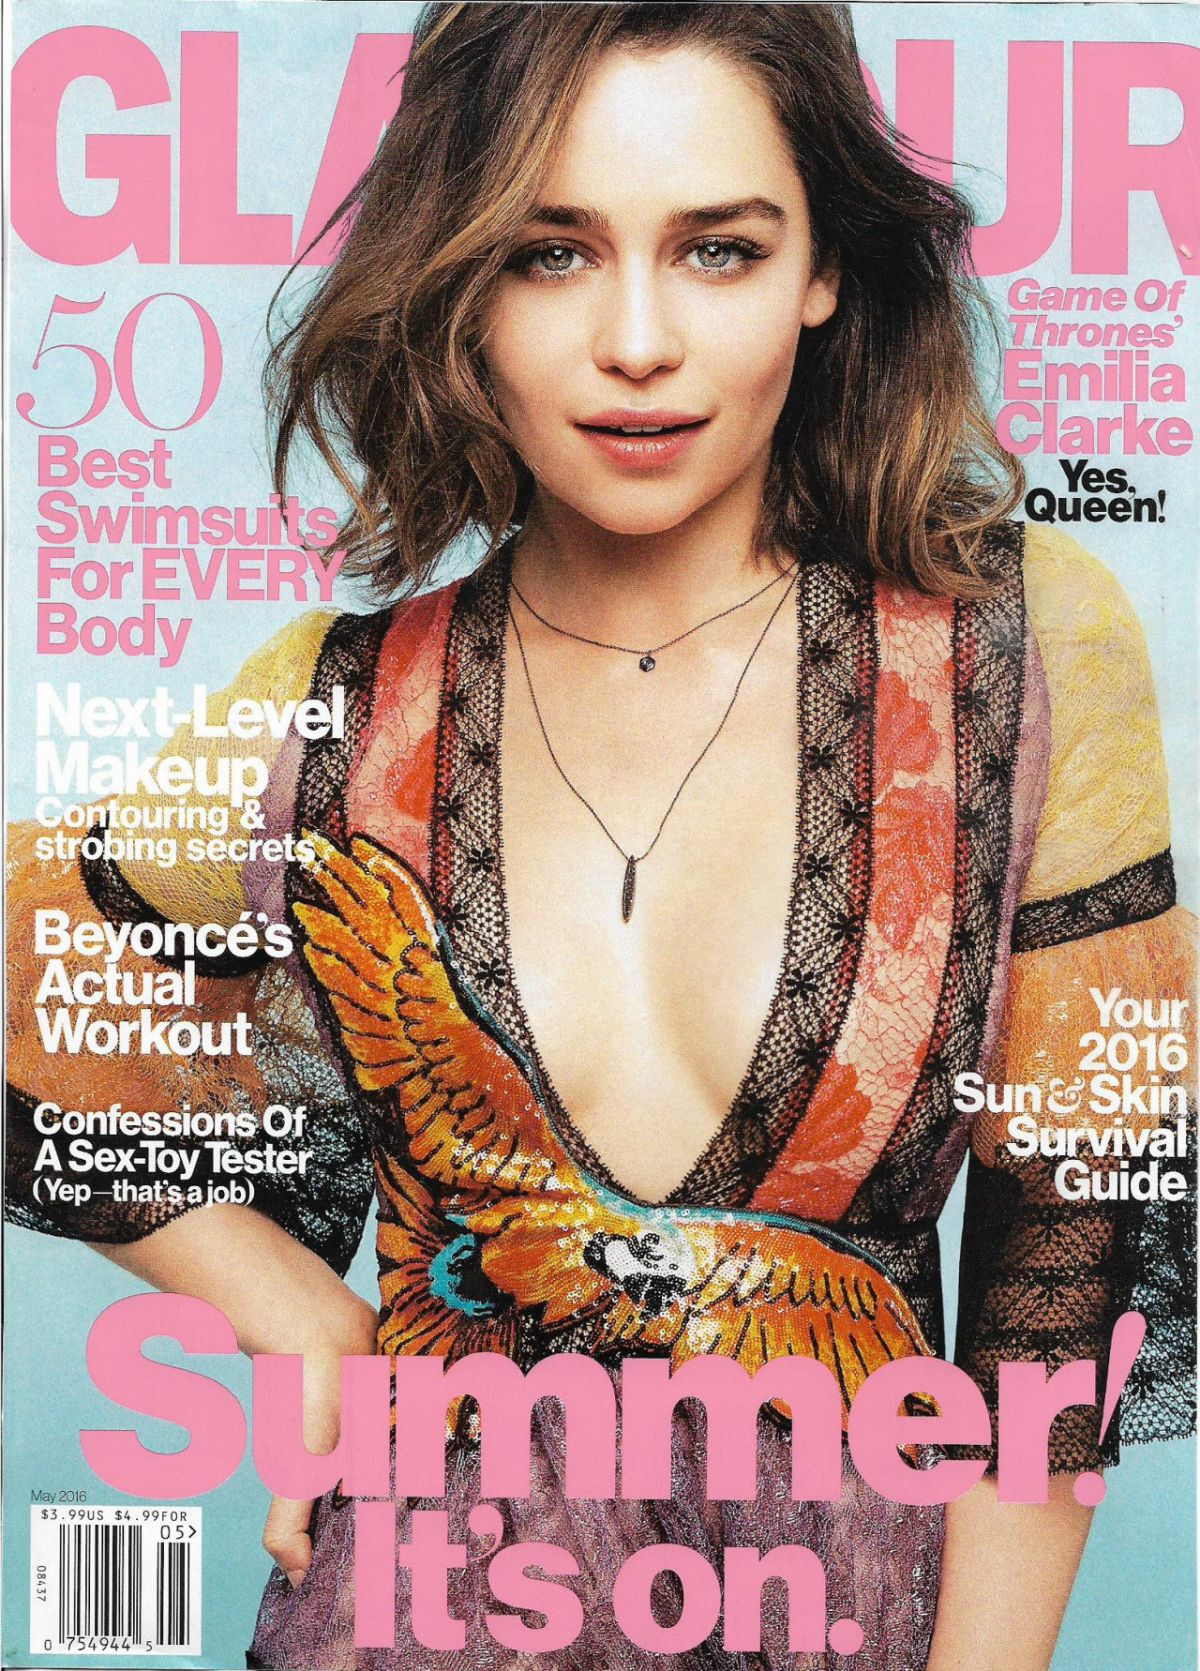 EMILIA CLARKE in Glamour Magazine, May 2016 Issue